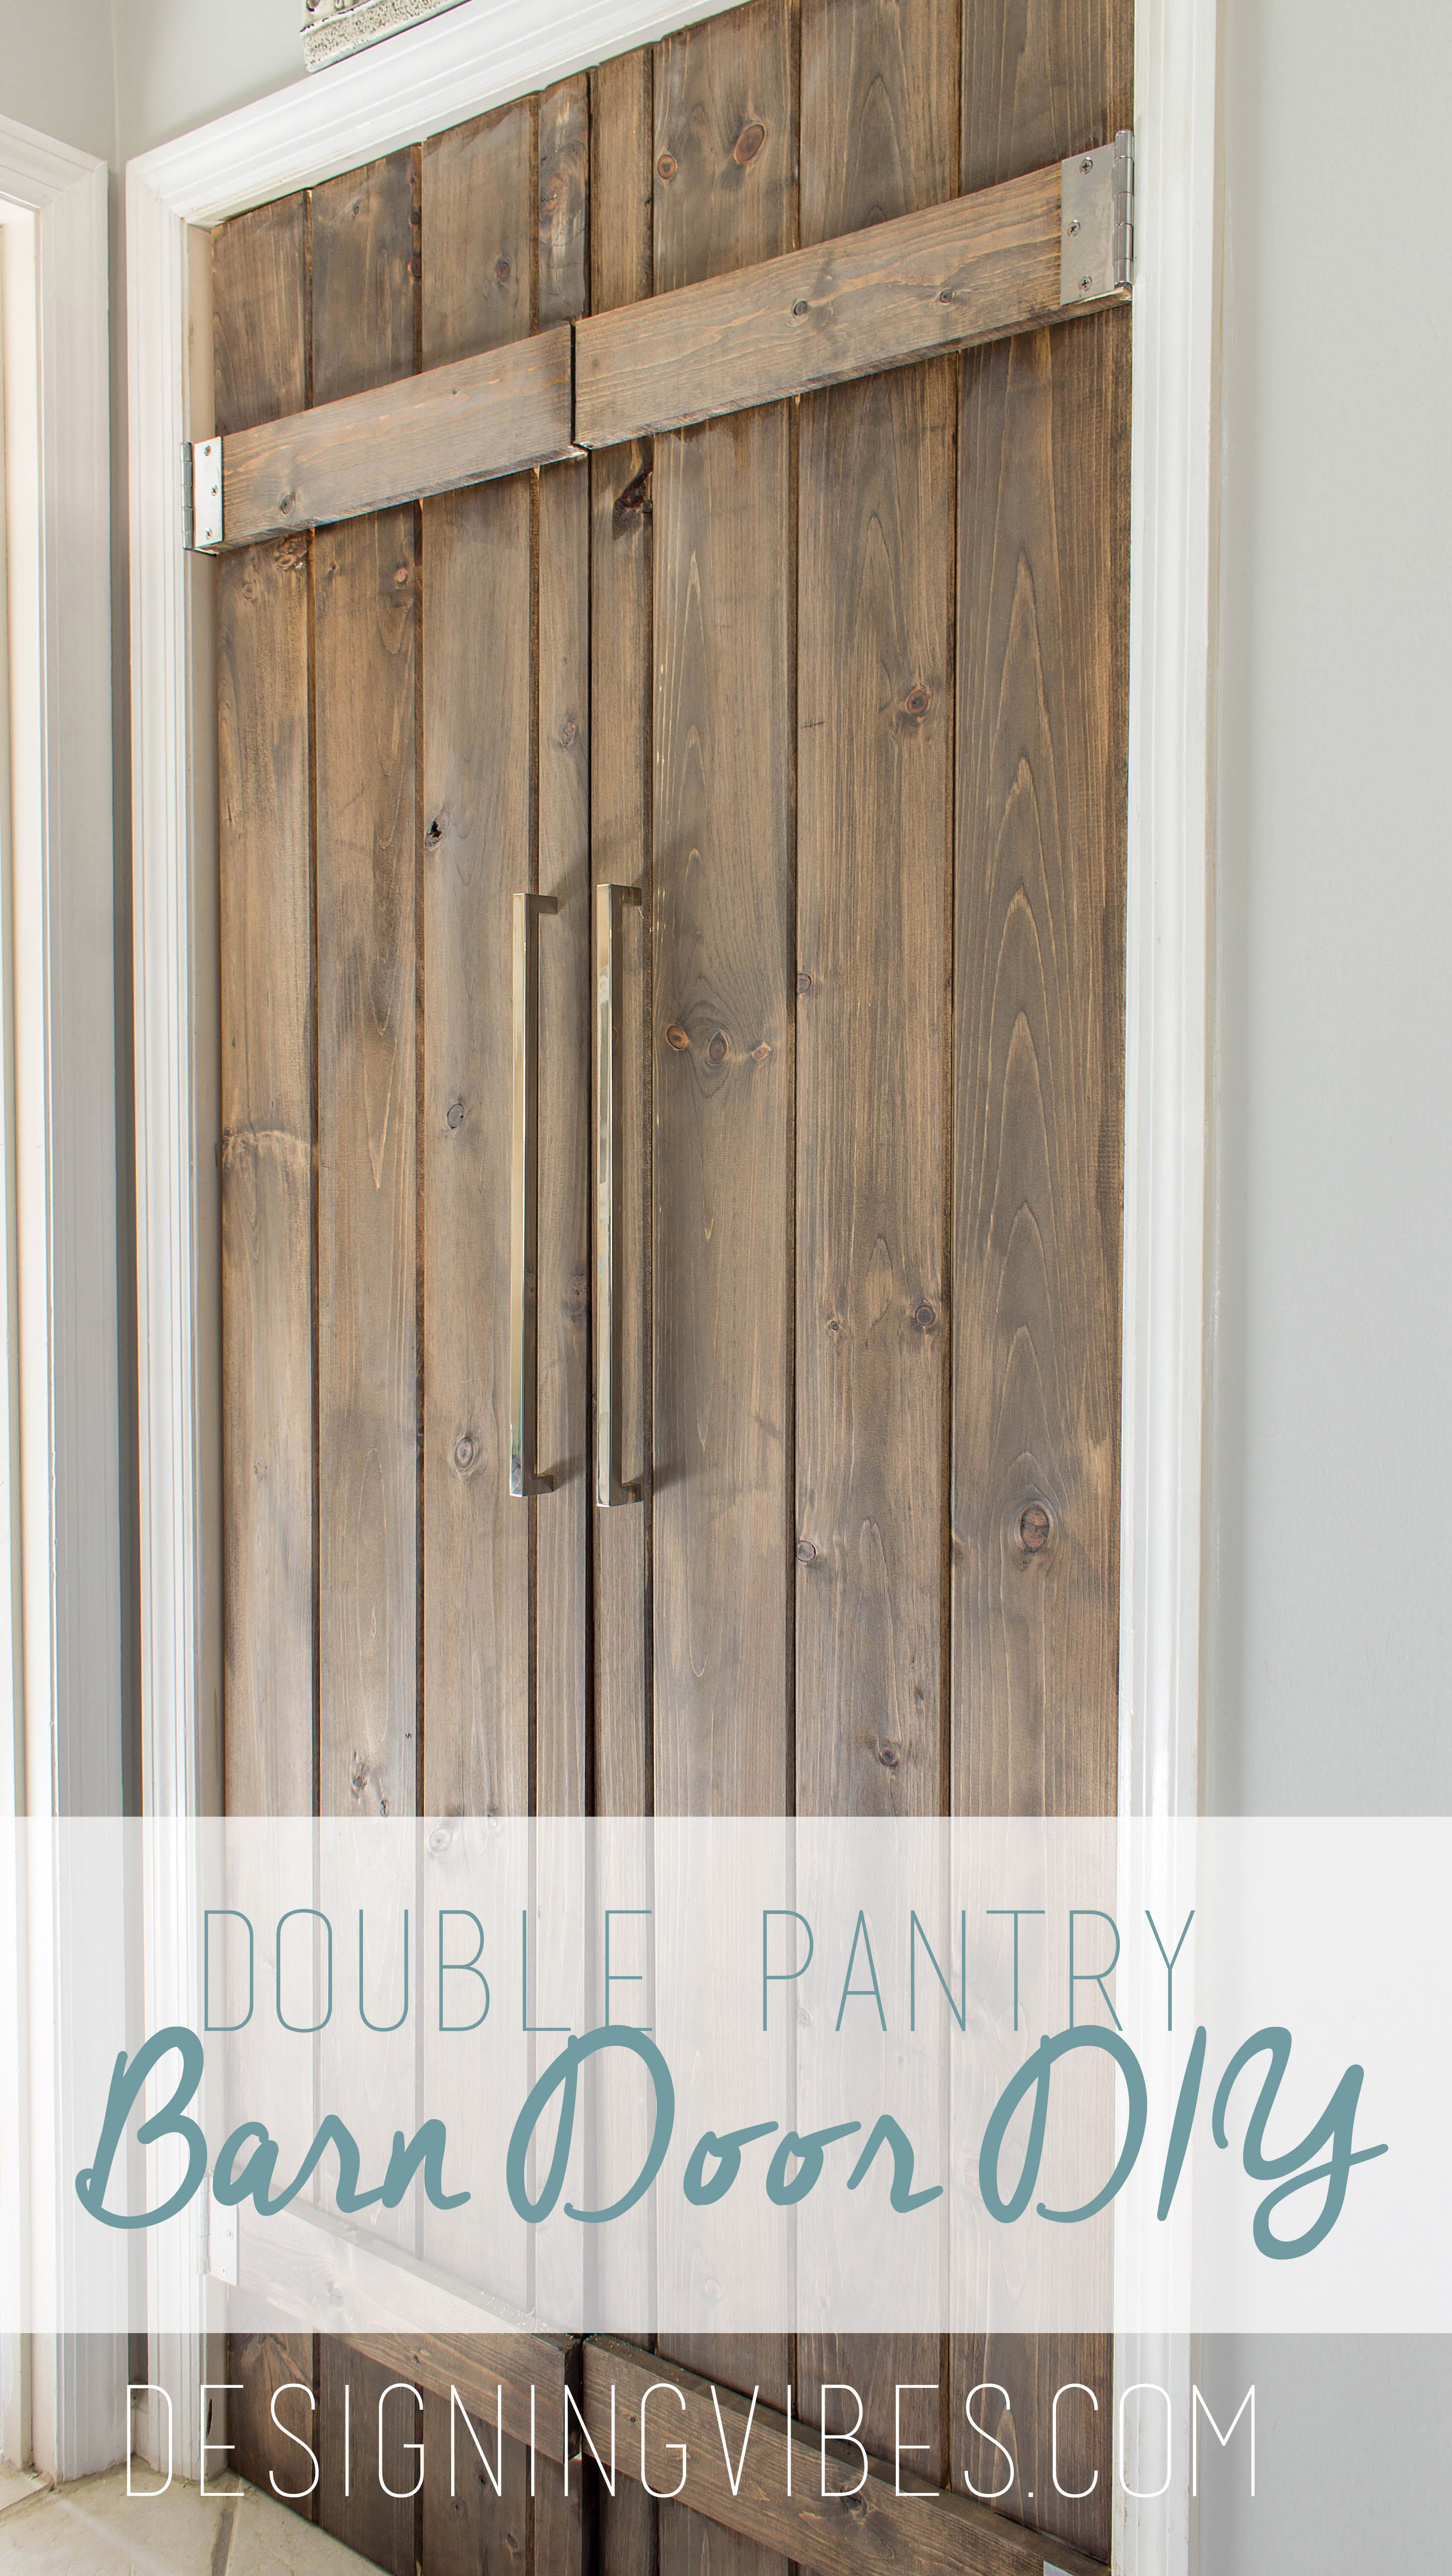 cheap barn door diy & Double Pantry Barn Door DIY Under $90- Bifold Pantry Door DIY Pezcame.Com